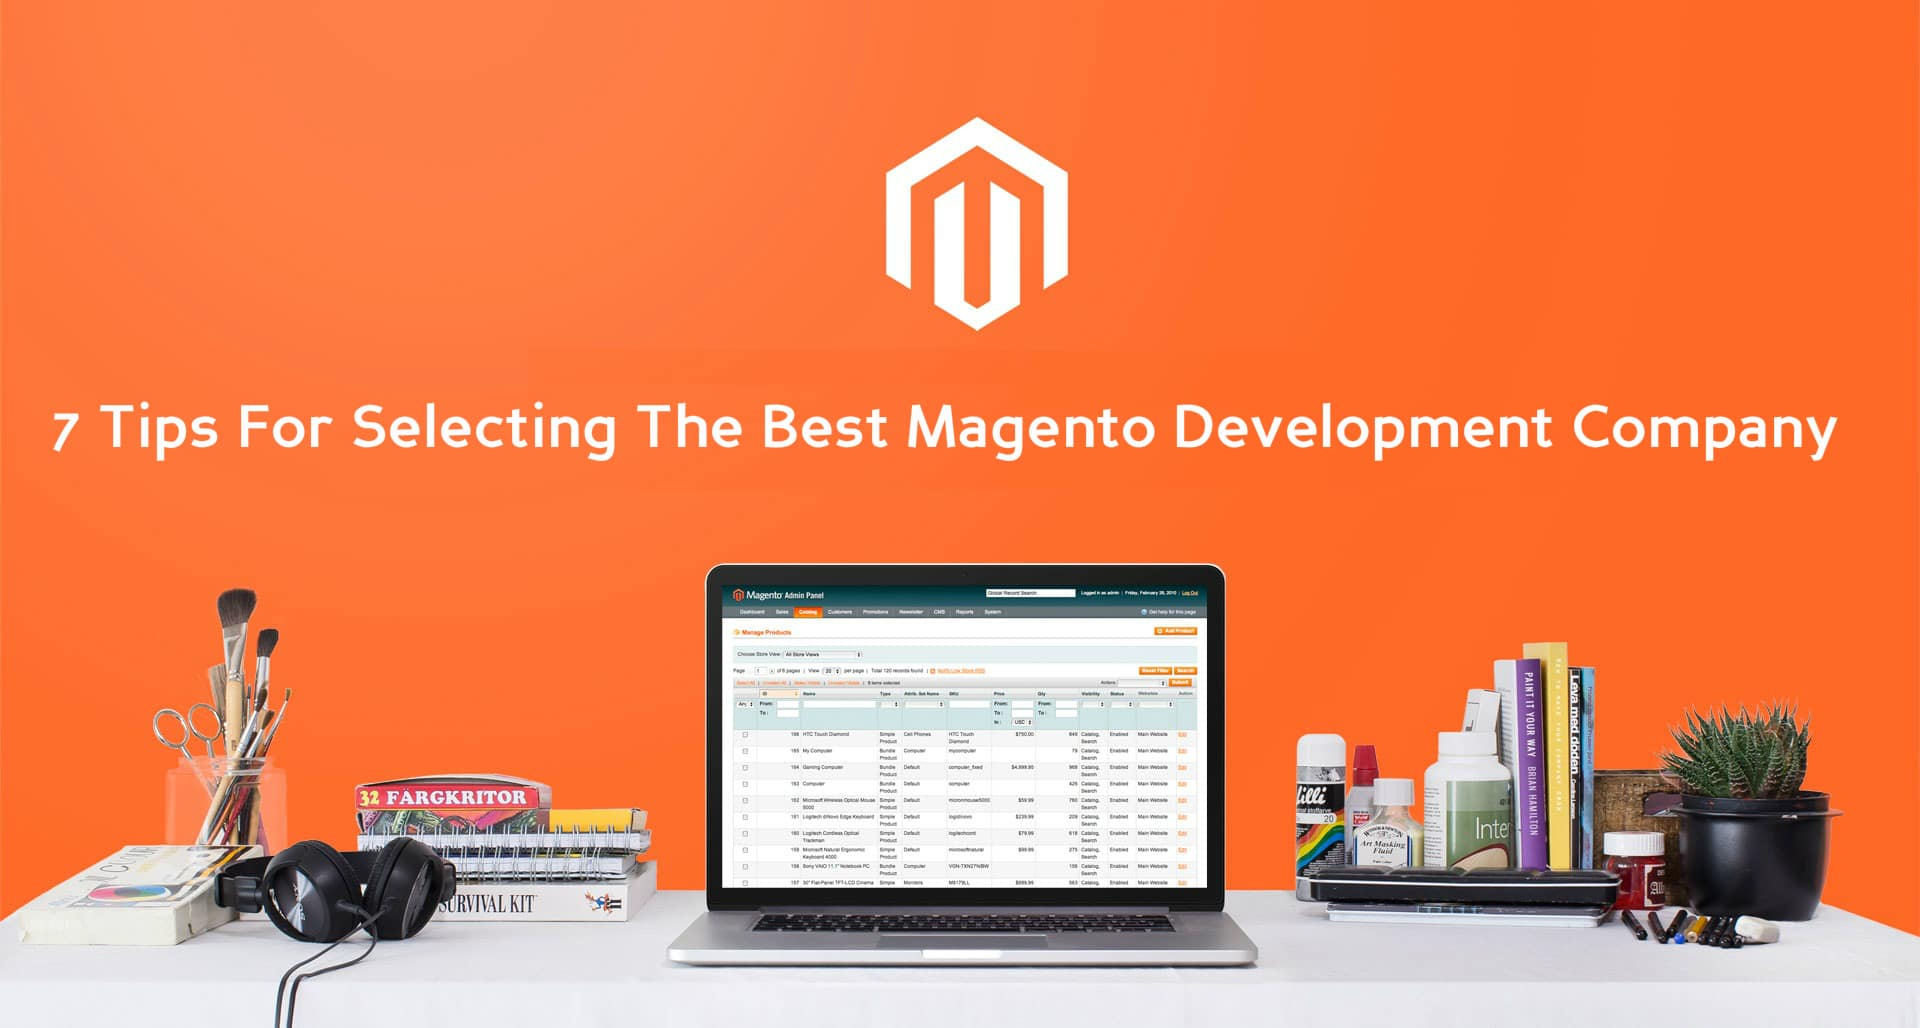 7 Tips For Selecting The Best Magento Development Company